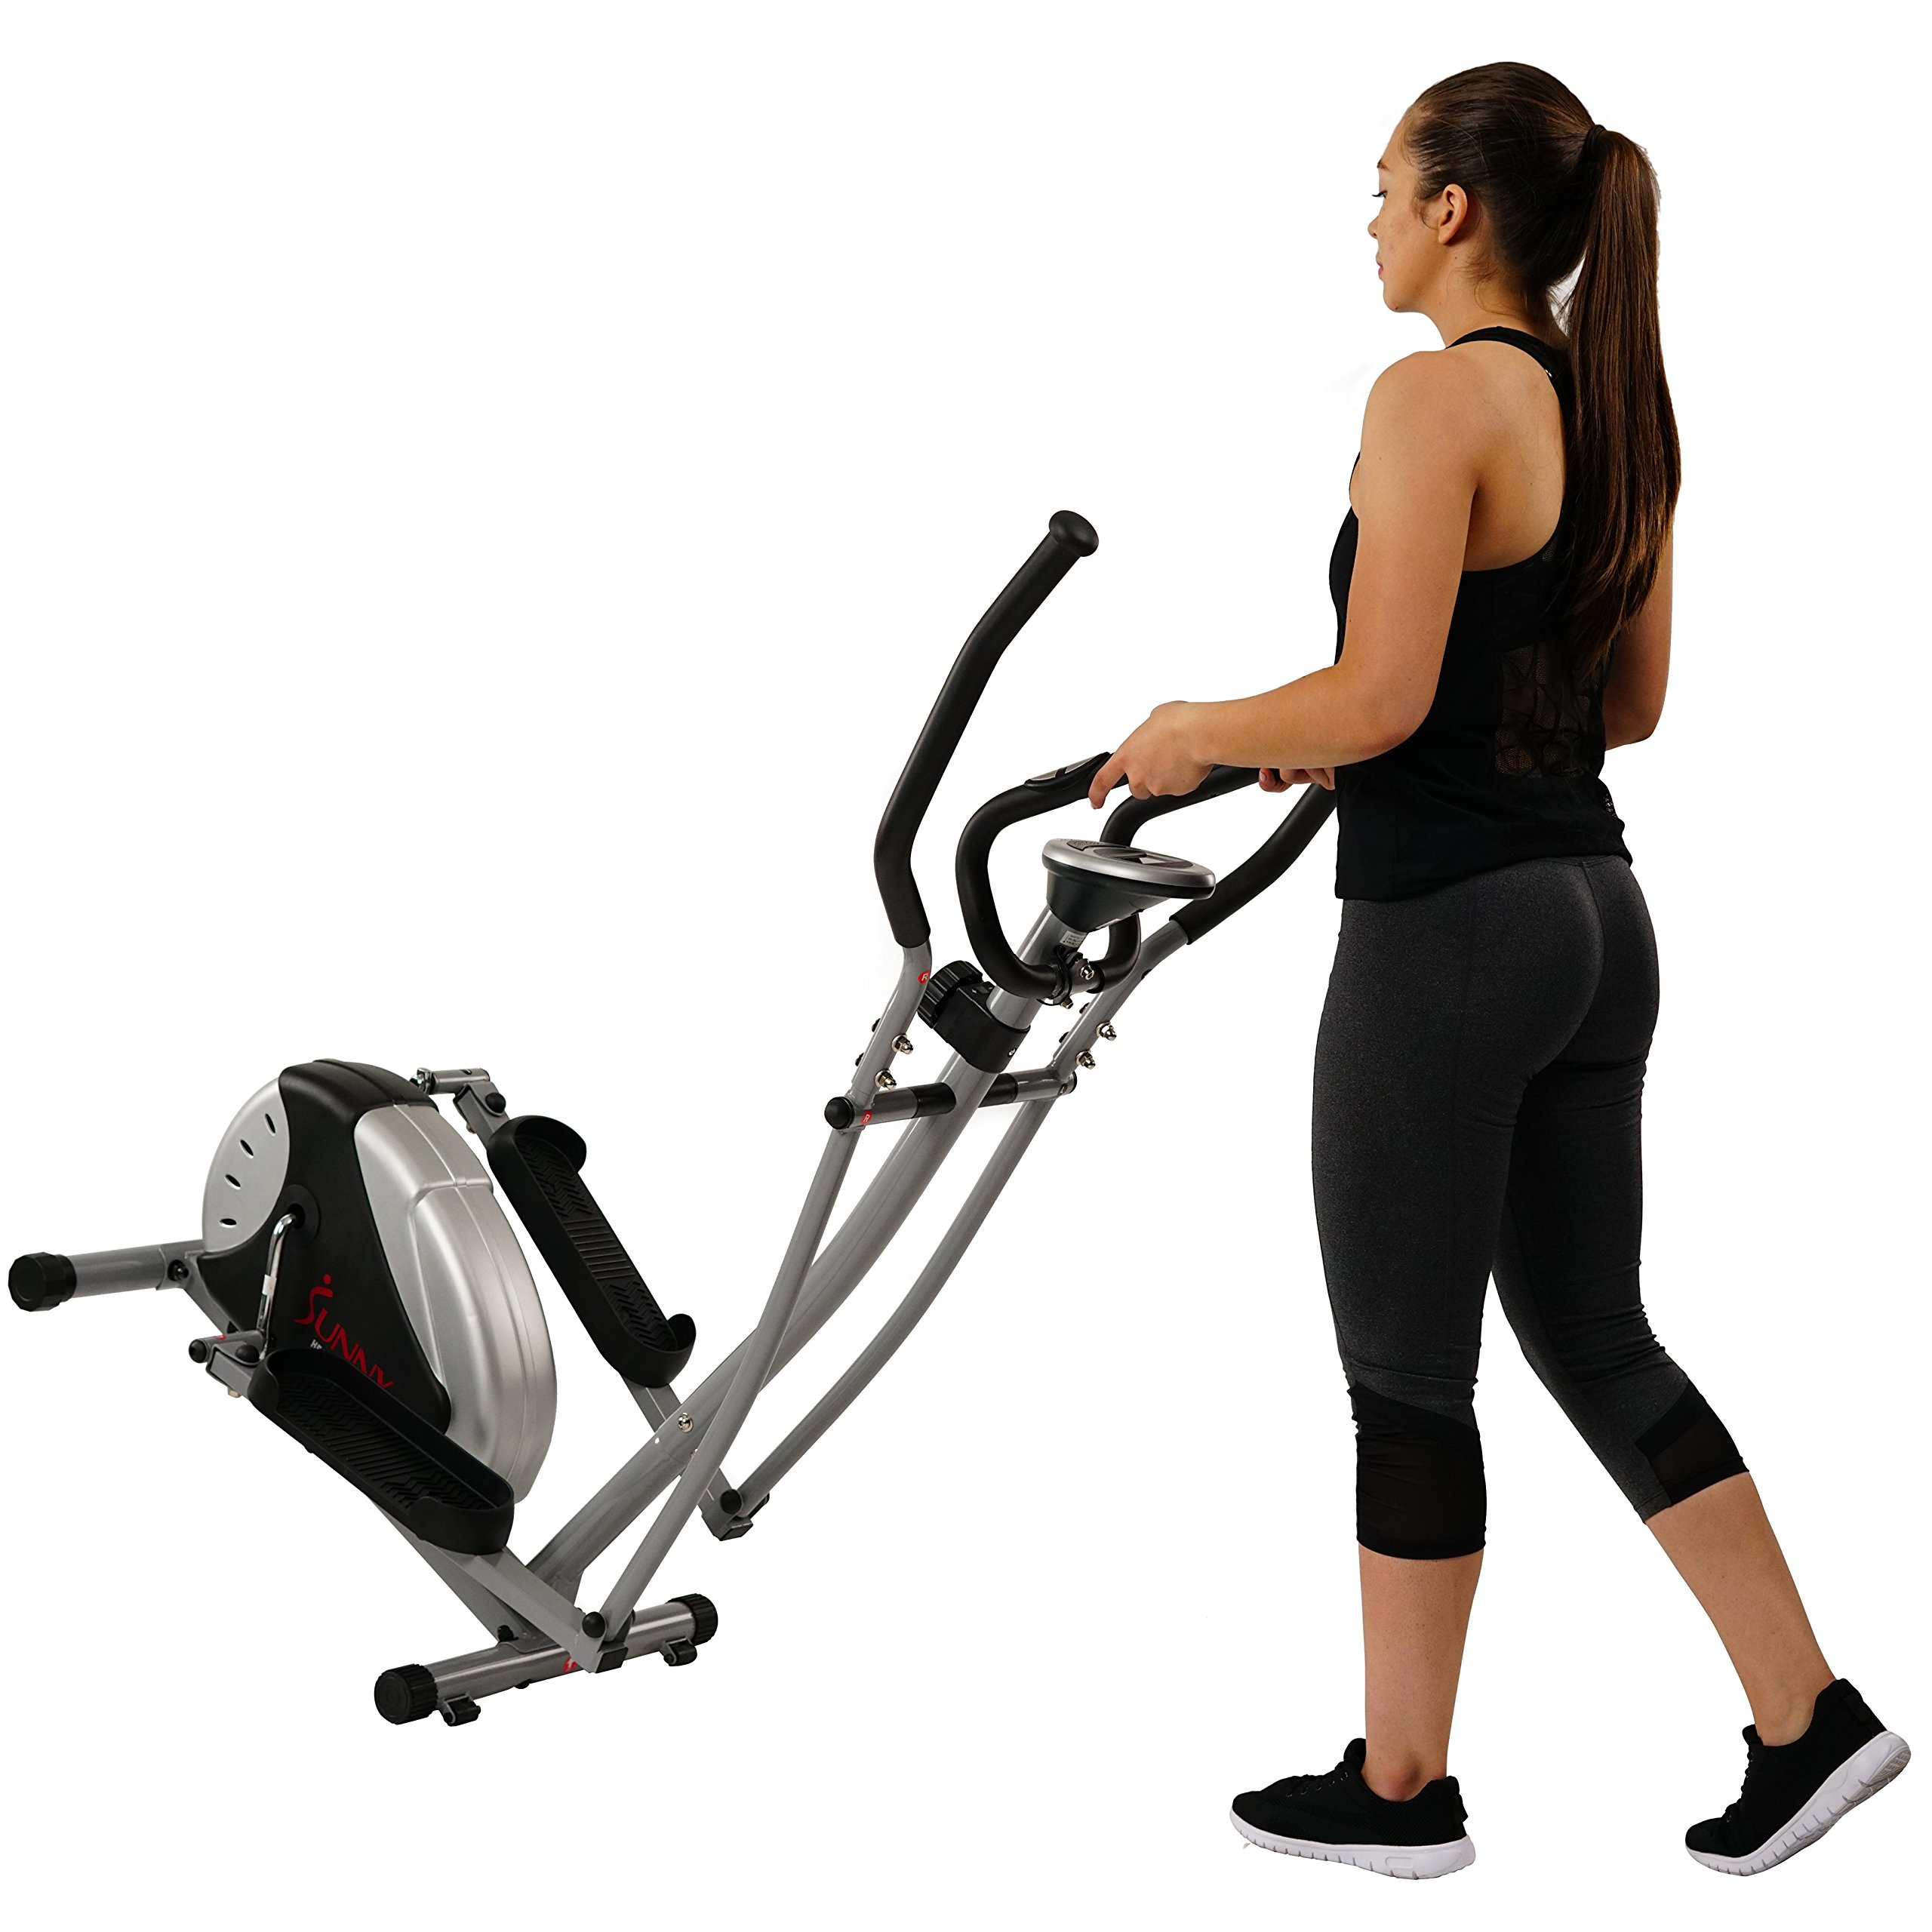 Magnetic Elliptical Machine Trainer by Sunny Health & Fitness - SF-E905 by Sunny Health & Fitness (Image #9)